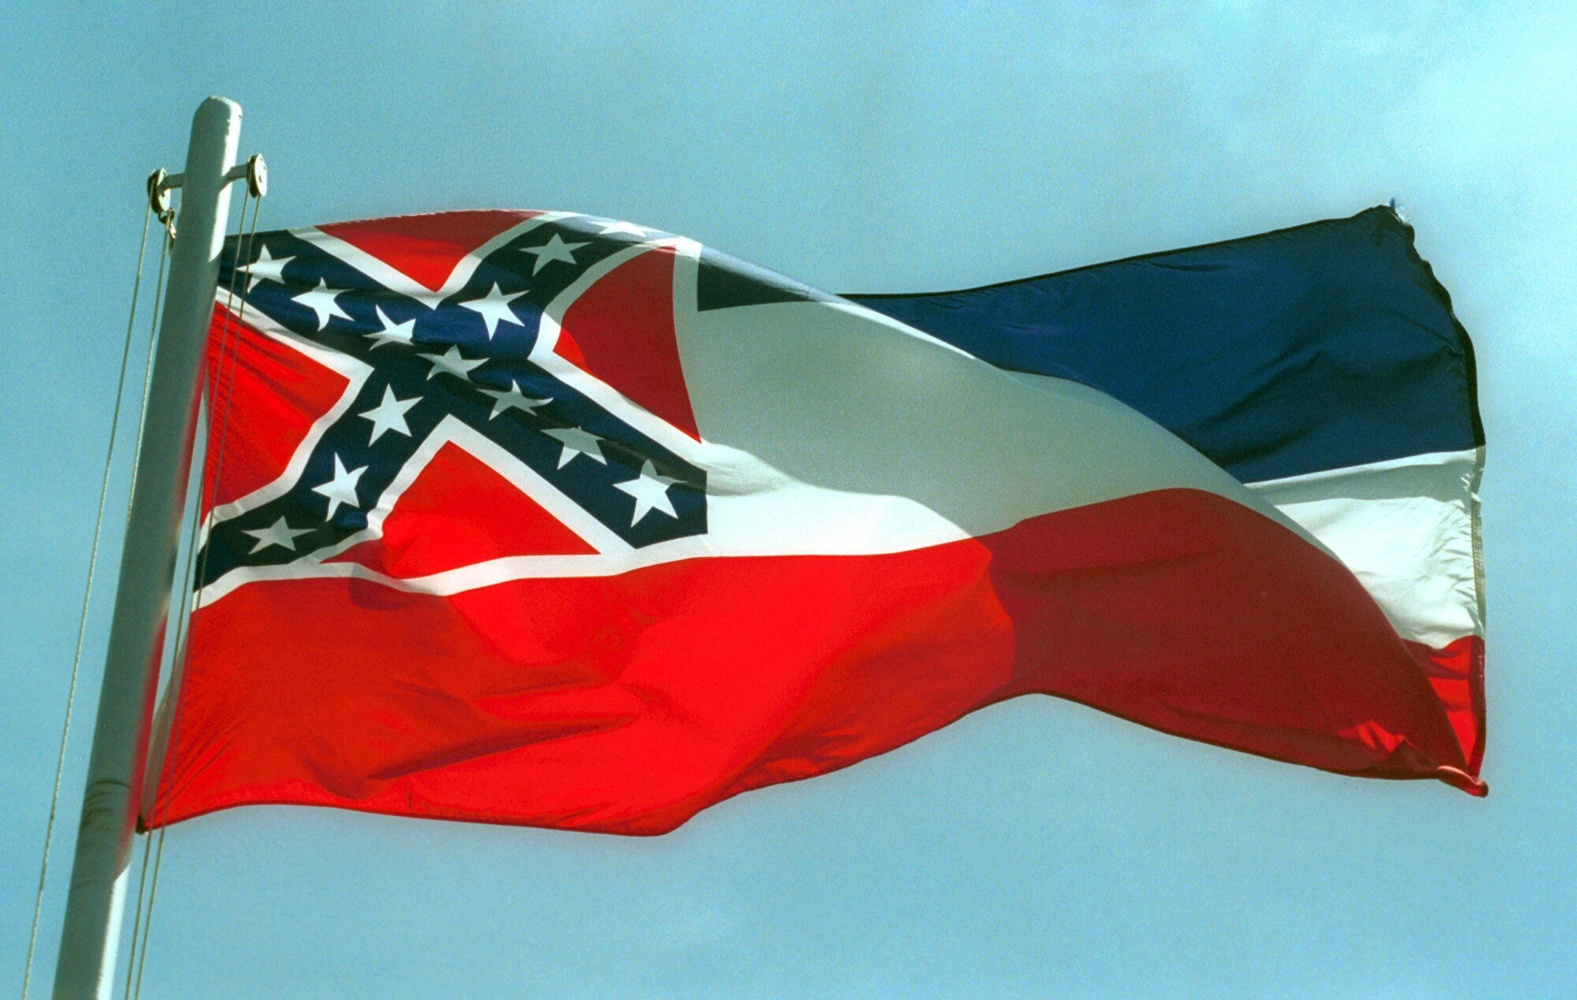 Supreme Court refuses to hear Mississippi Confederate flag case